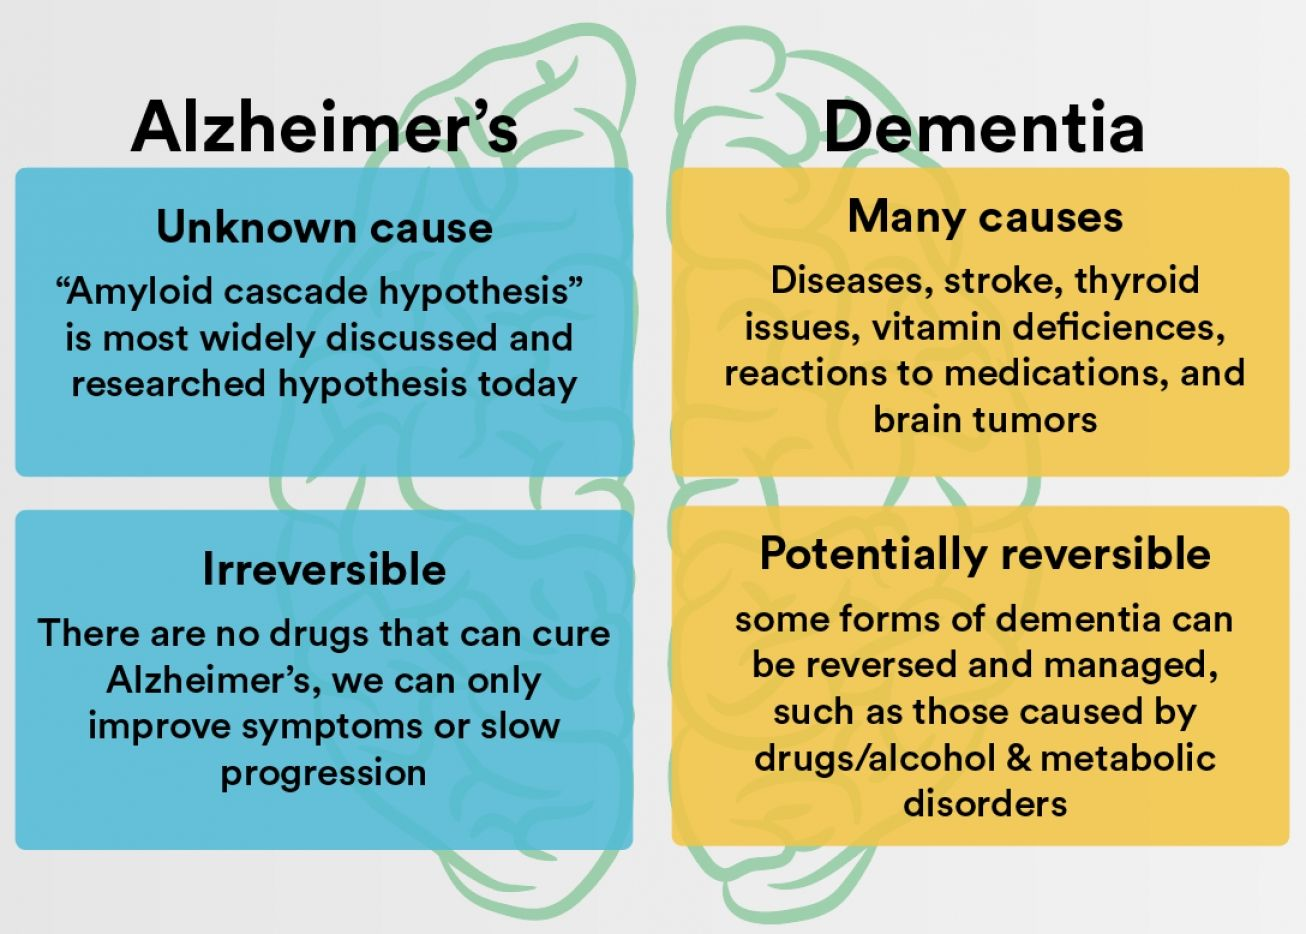 Which Type Of Dementia Is Potentially Reversible